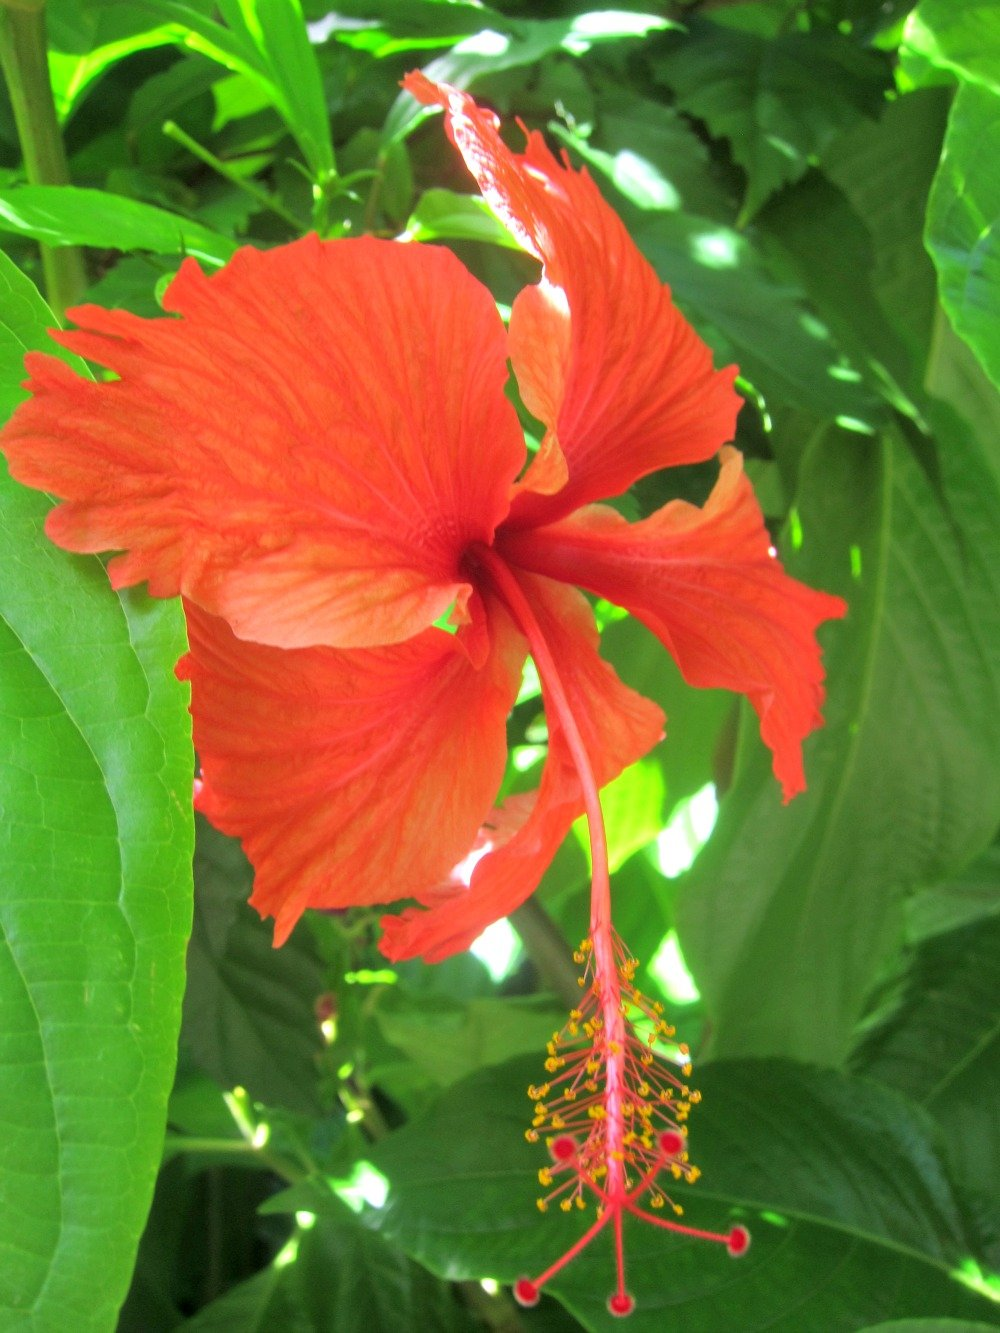 Hibiscus Flowers are very common in Townsville.